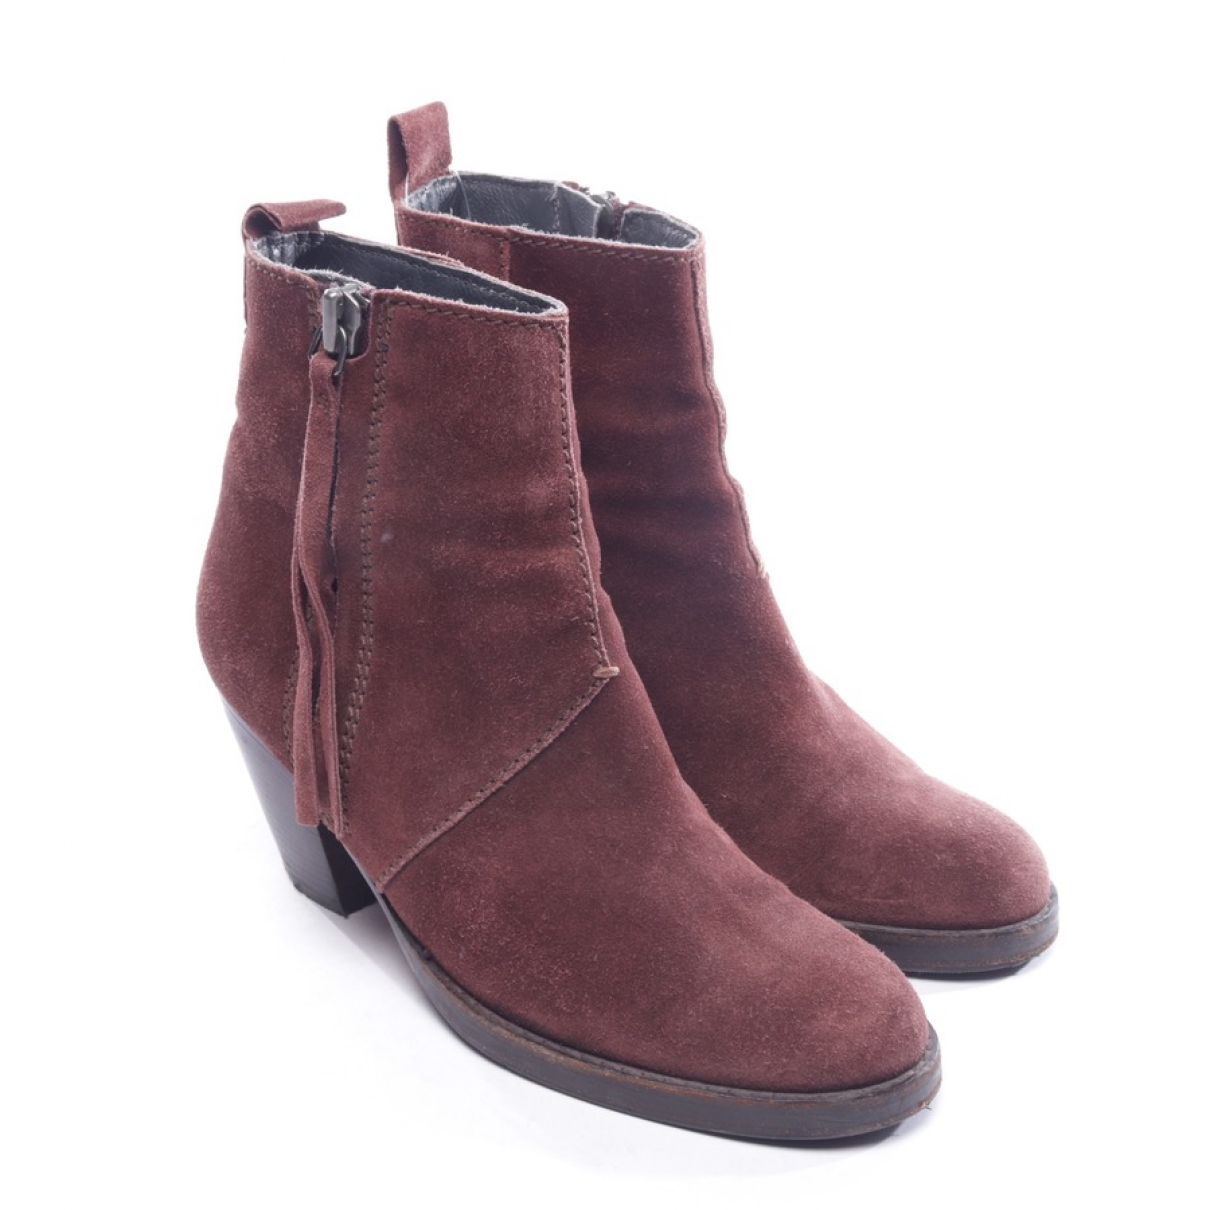 Acne Studios \N Burgundy Suede Ankle boots for Women 37 EU